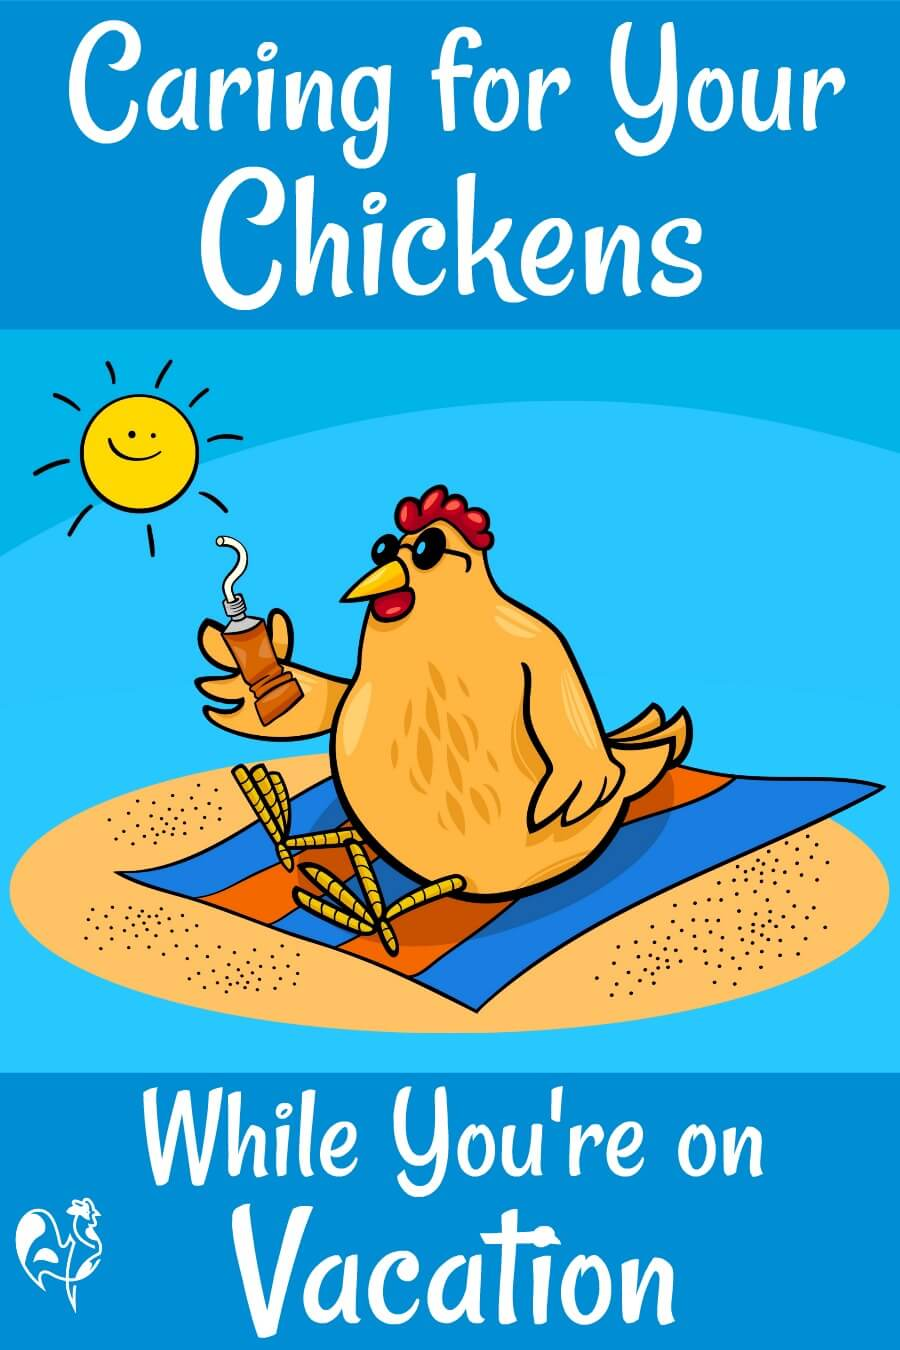 How to make sure your chickens are cared for when you go on vacation. Pin for later.